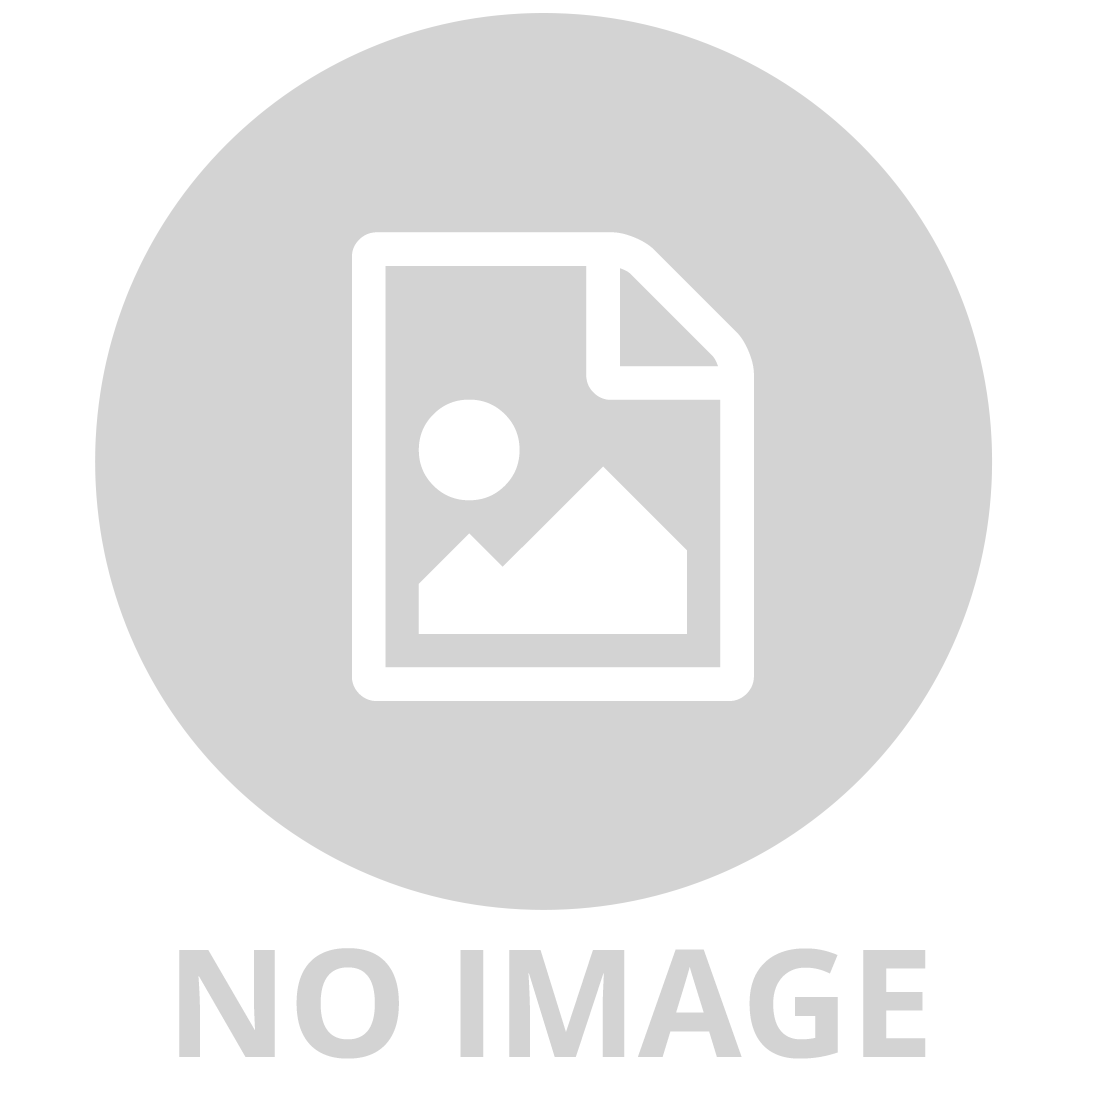 BACHMANN N GAUGE 3 DOME TANK CAR